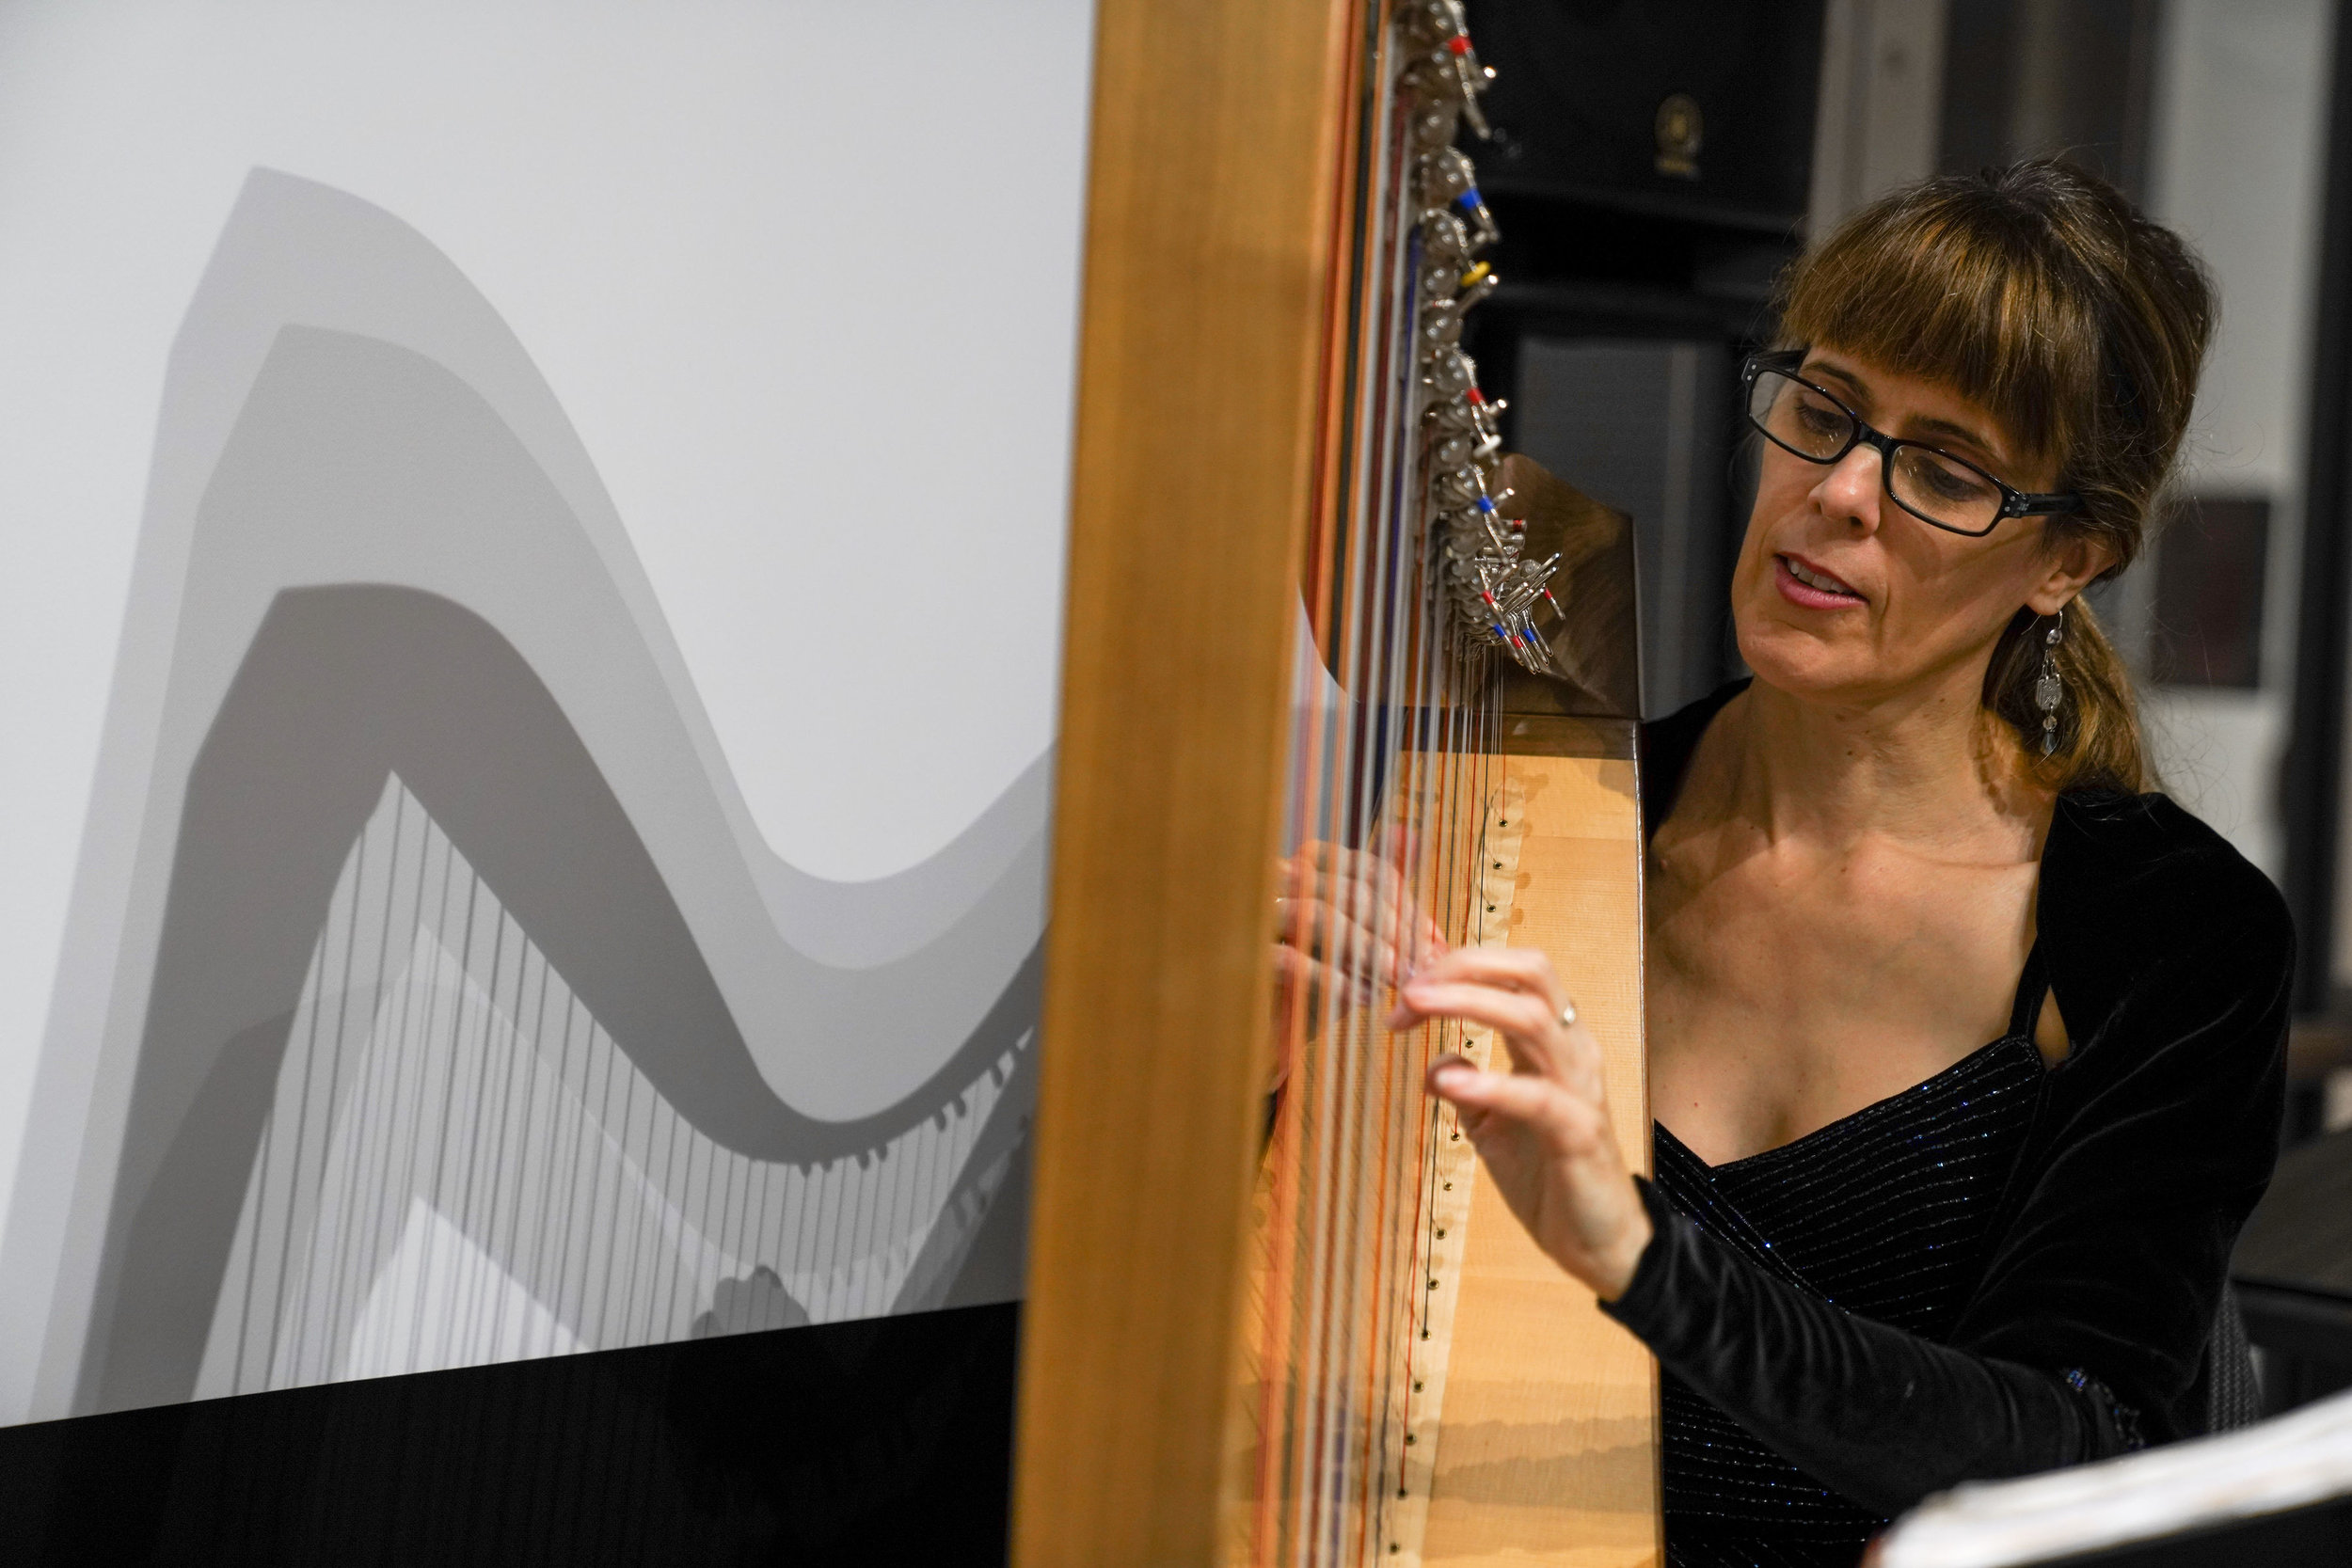 Acclaimed harpist Rebecca Blair